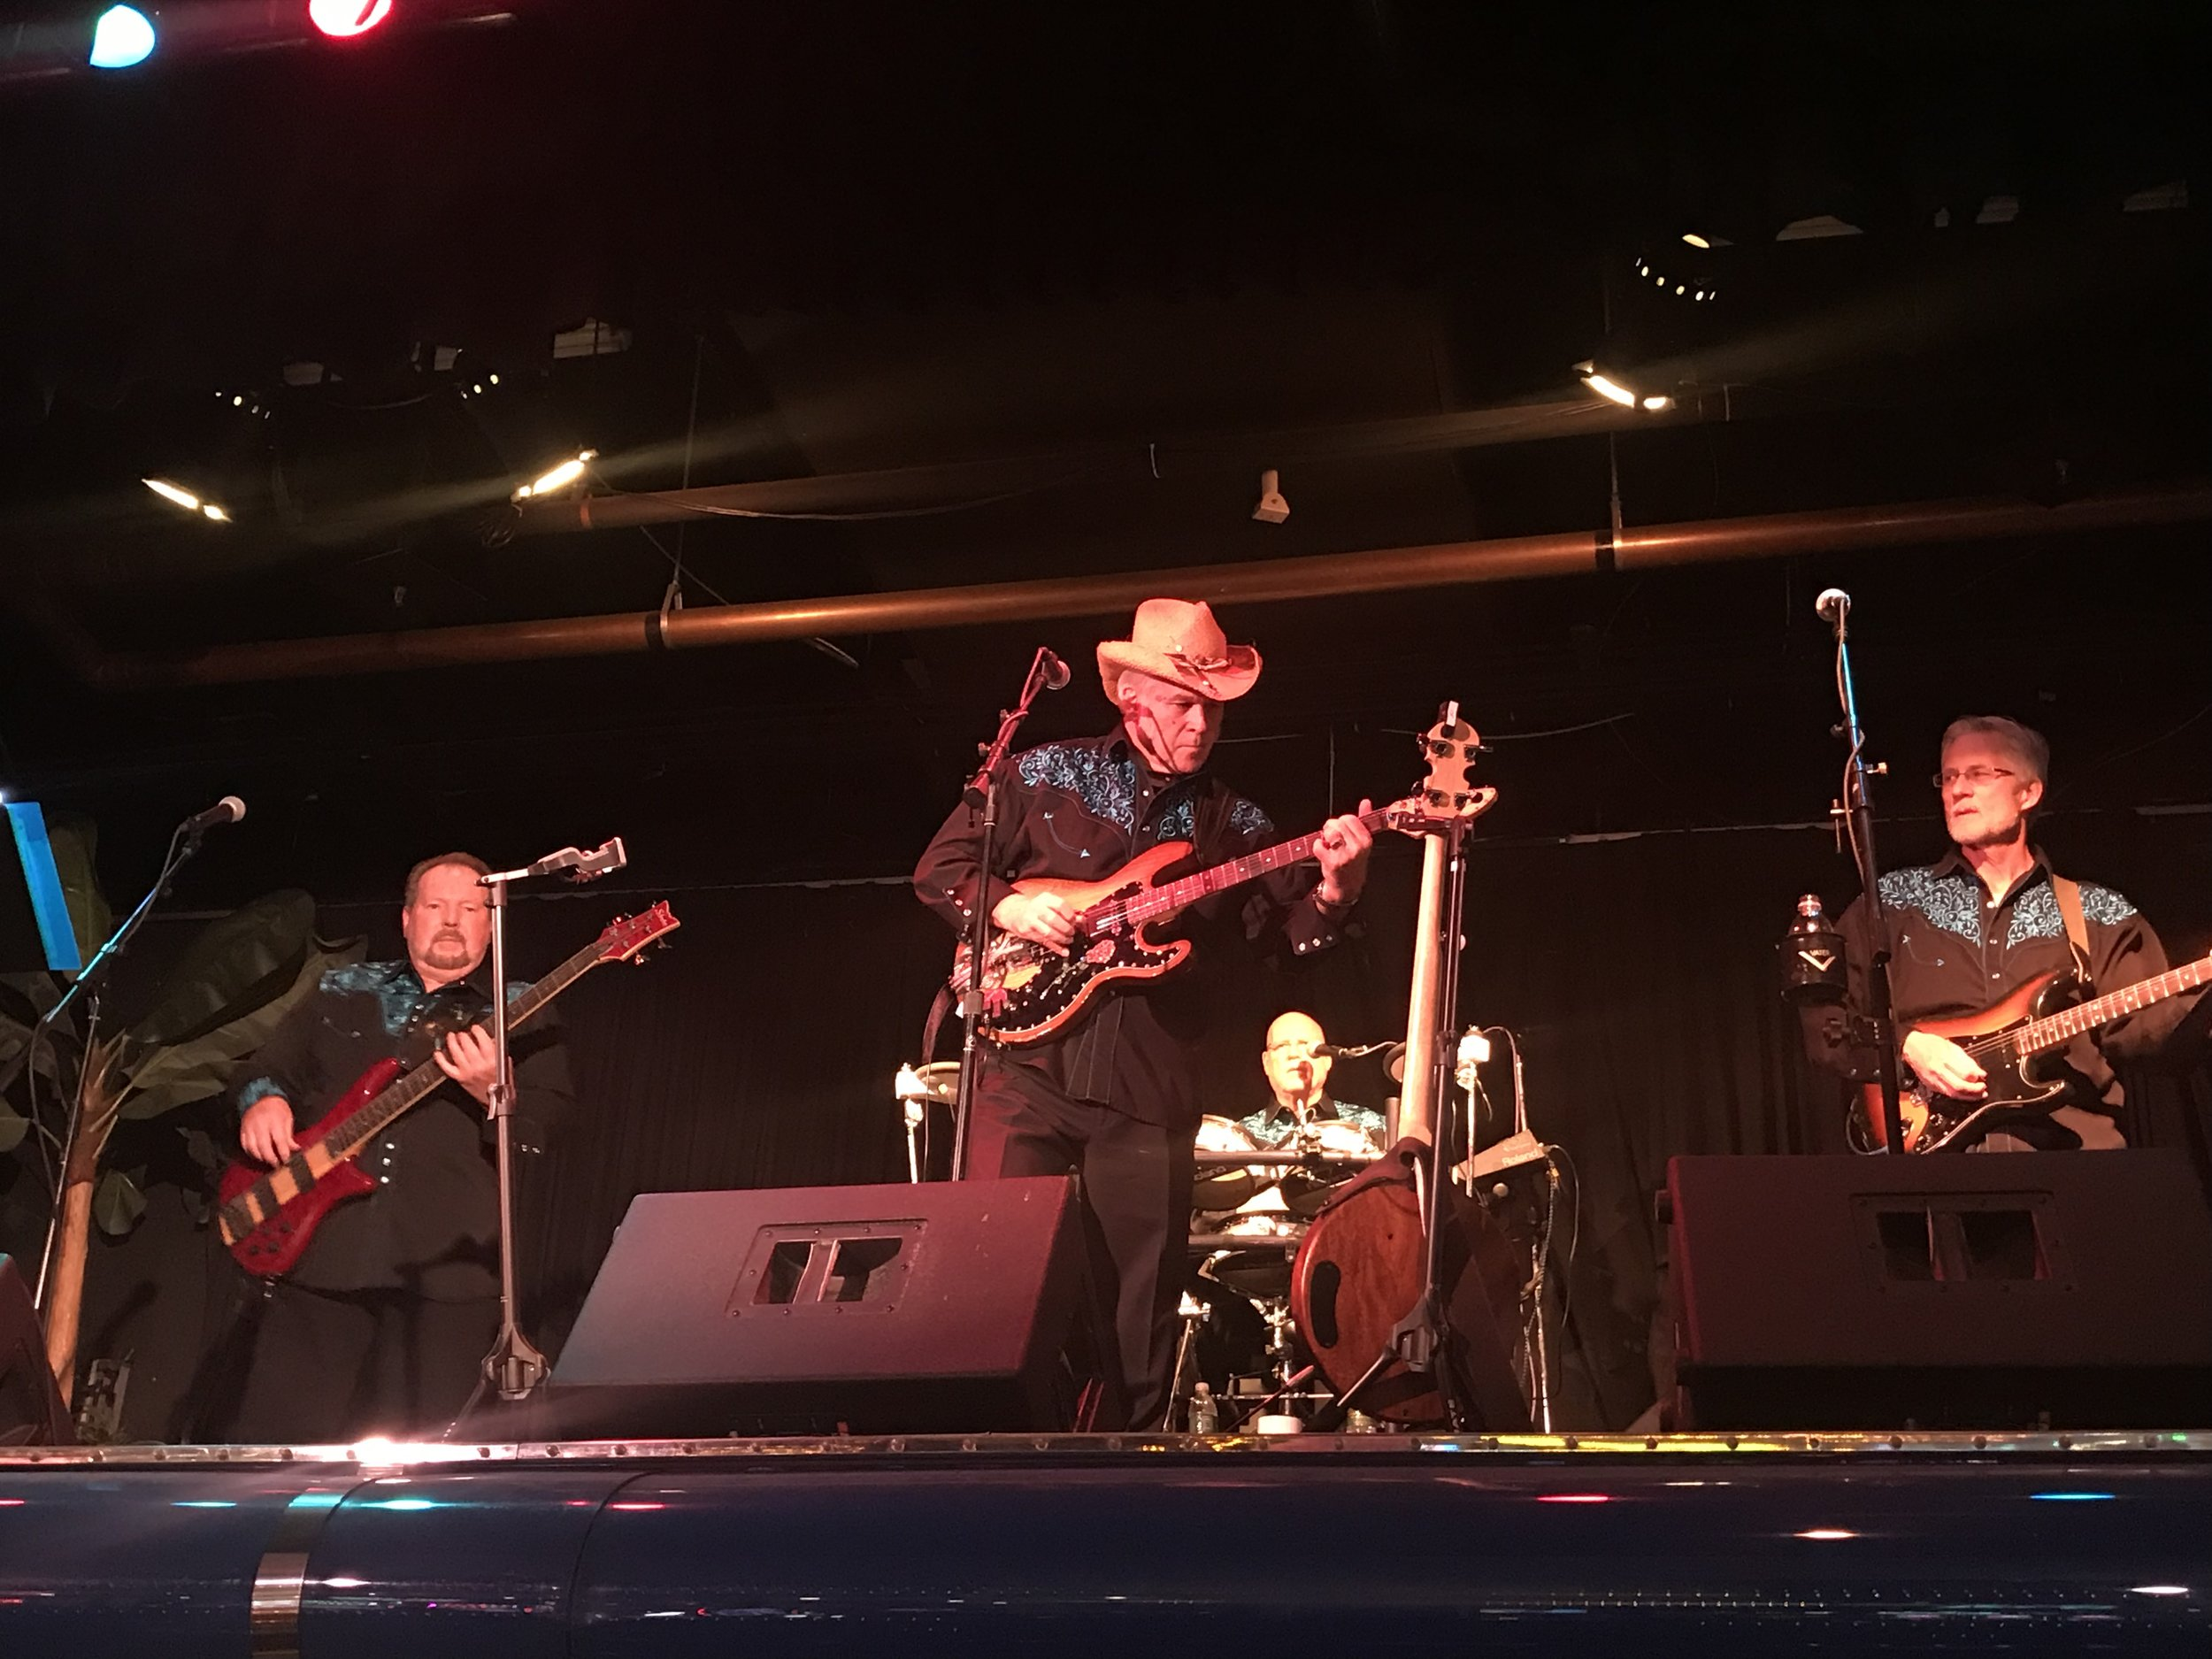 Garry on bass, Joey on guitar, Jhano on drums and Curt on guitar at a show in Carson City at the Fandango Casino.